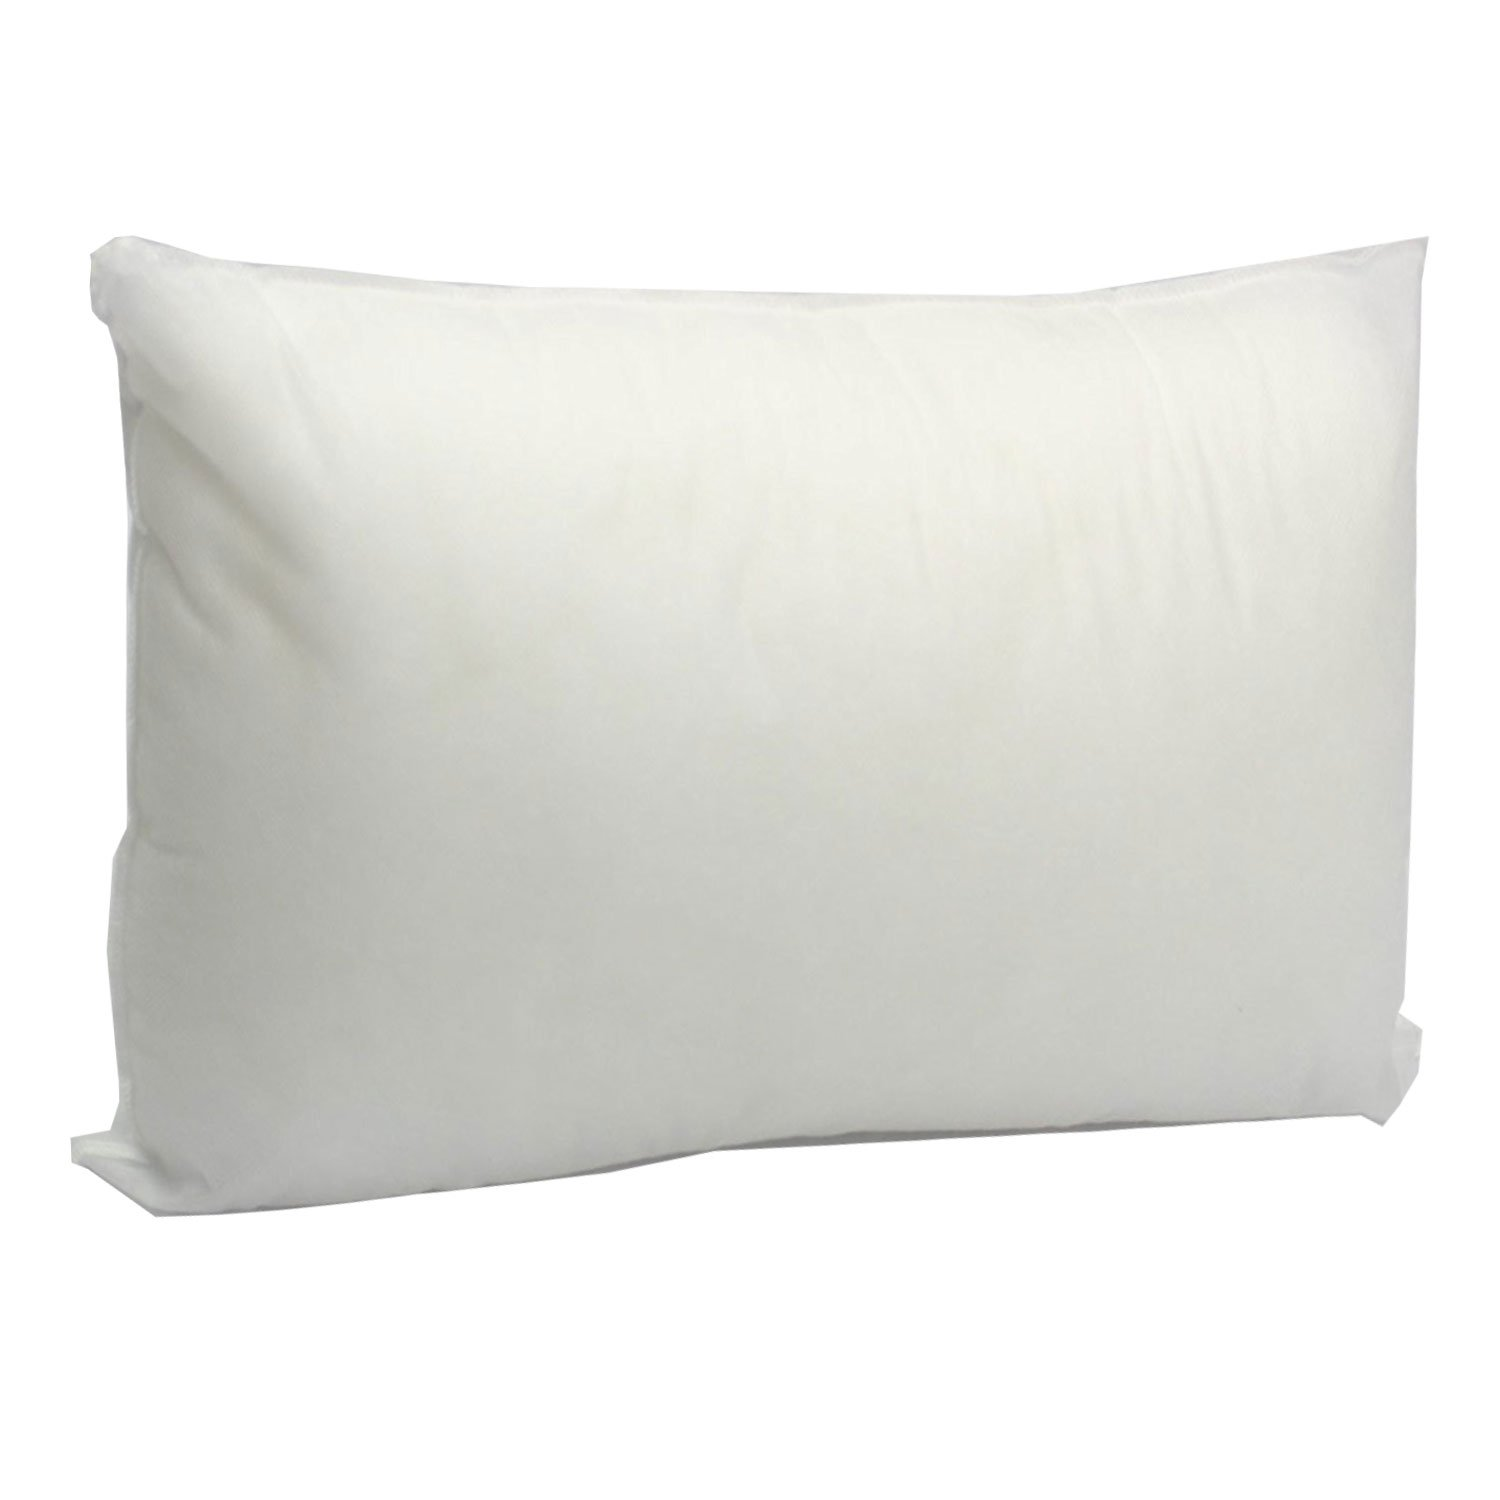 Toddler pillow insert For Sleeping - Soft & Hypoallergenic - Insert Form Angel Cushion (ages +2) Made In the USA